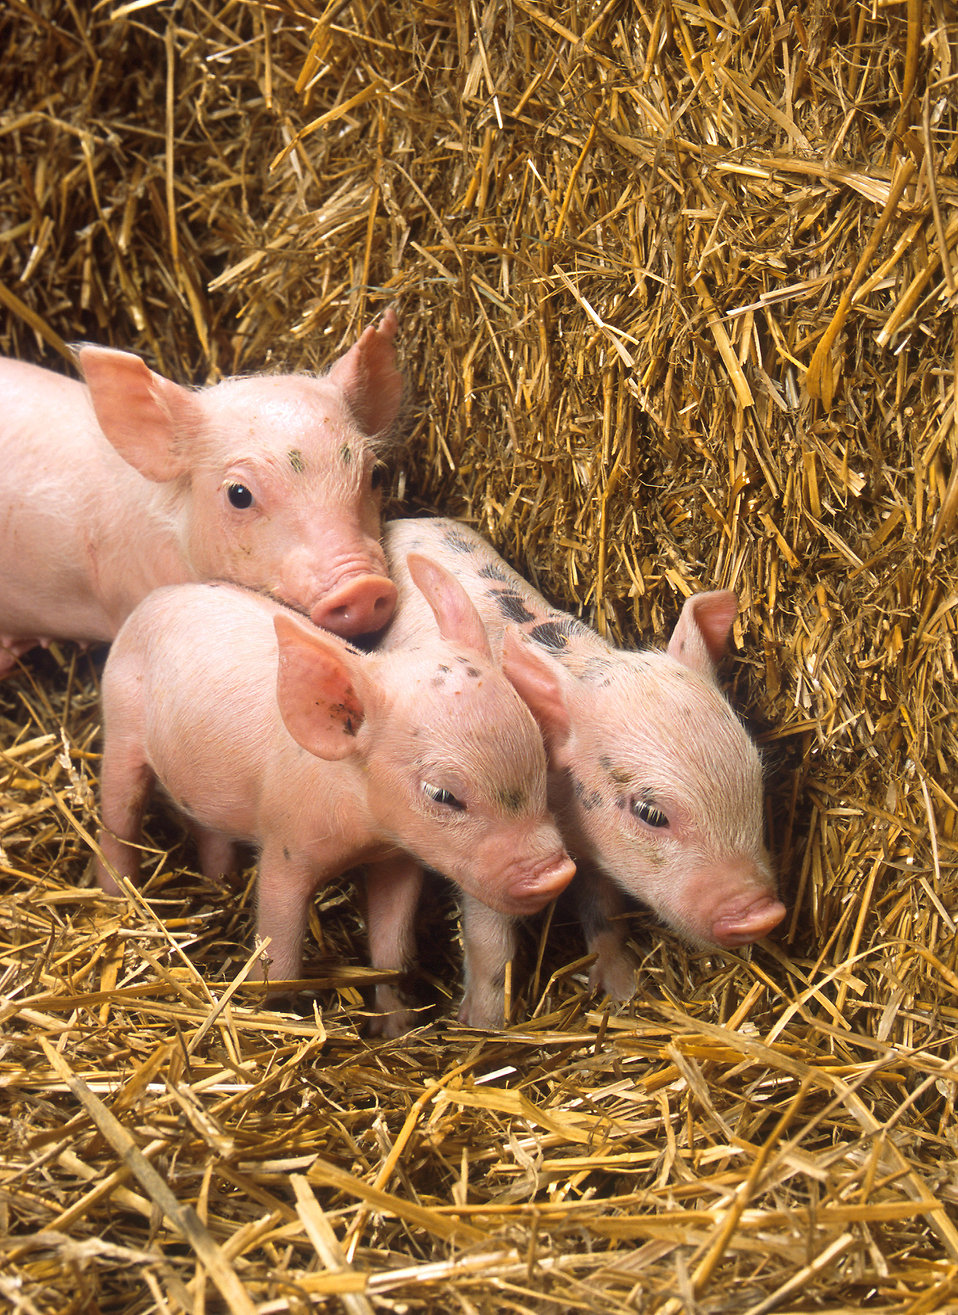 Three piglets by a bale of straw : Free Stock Photo